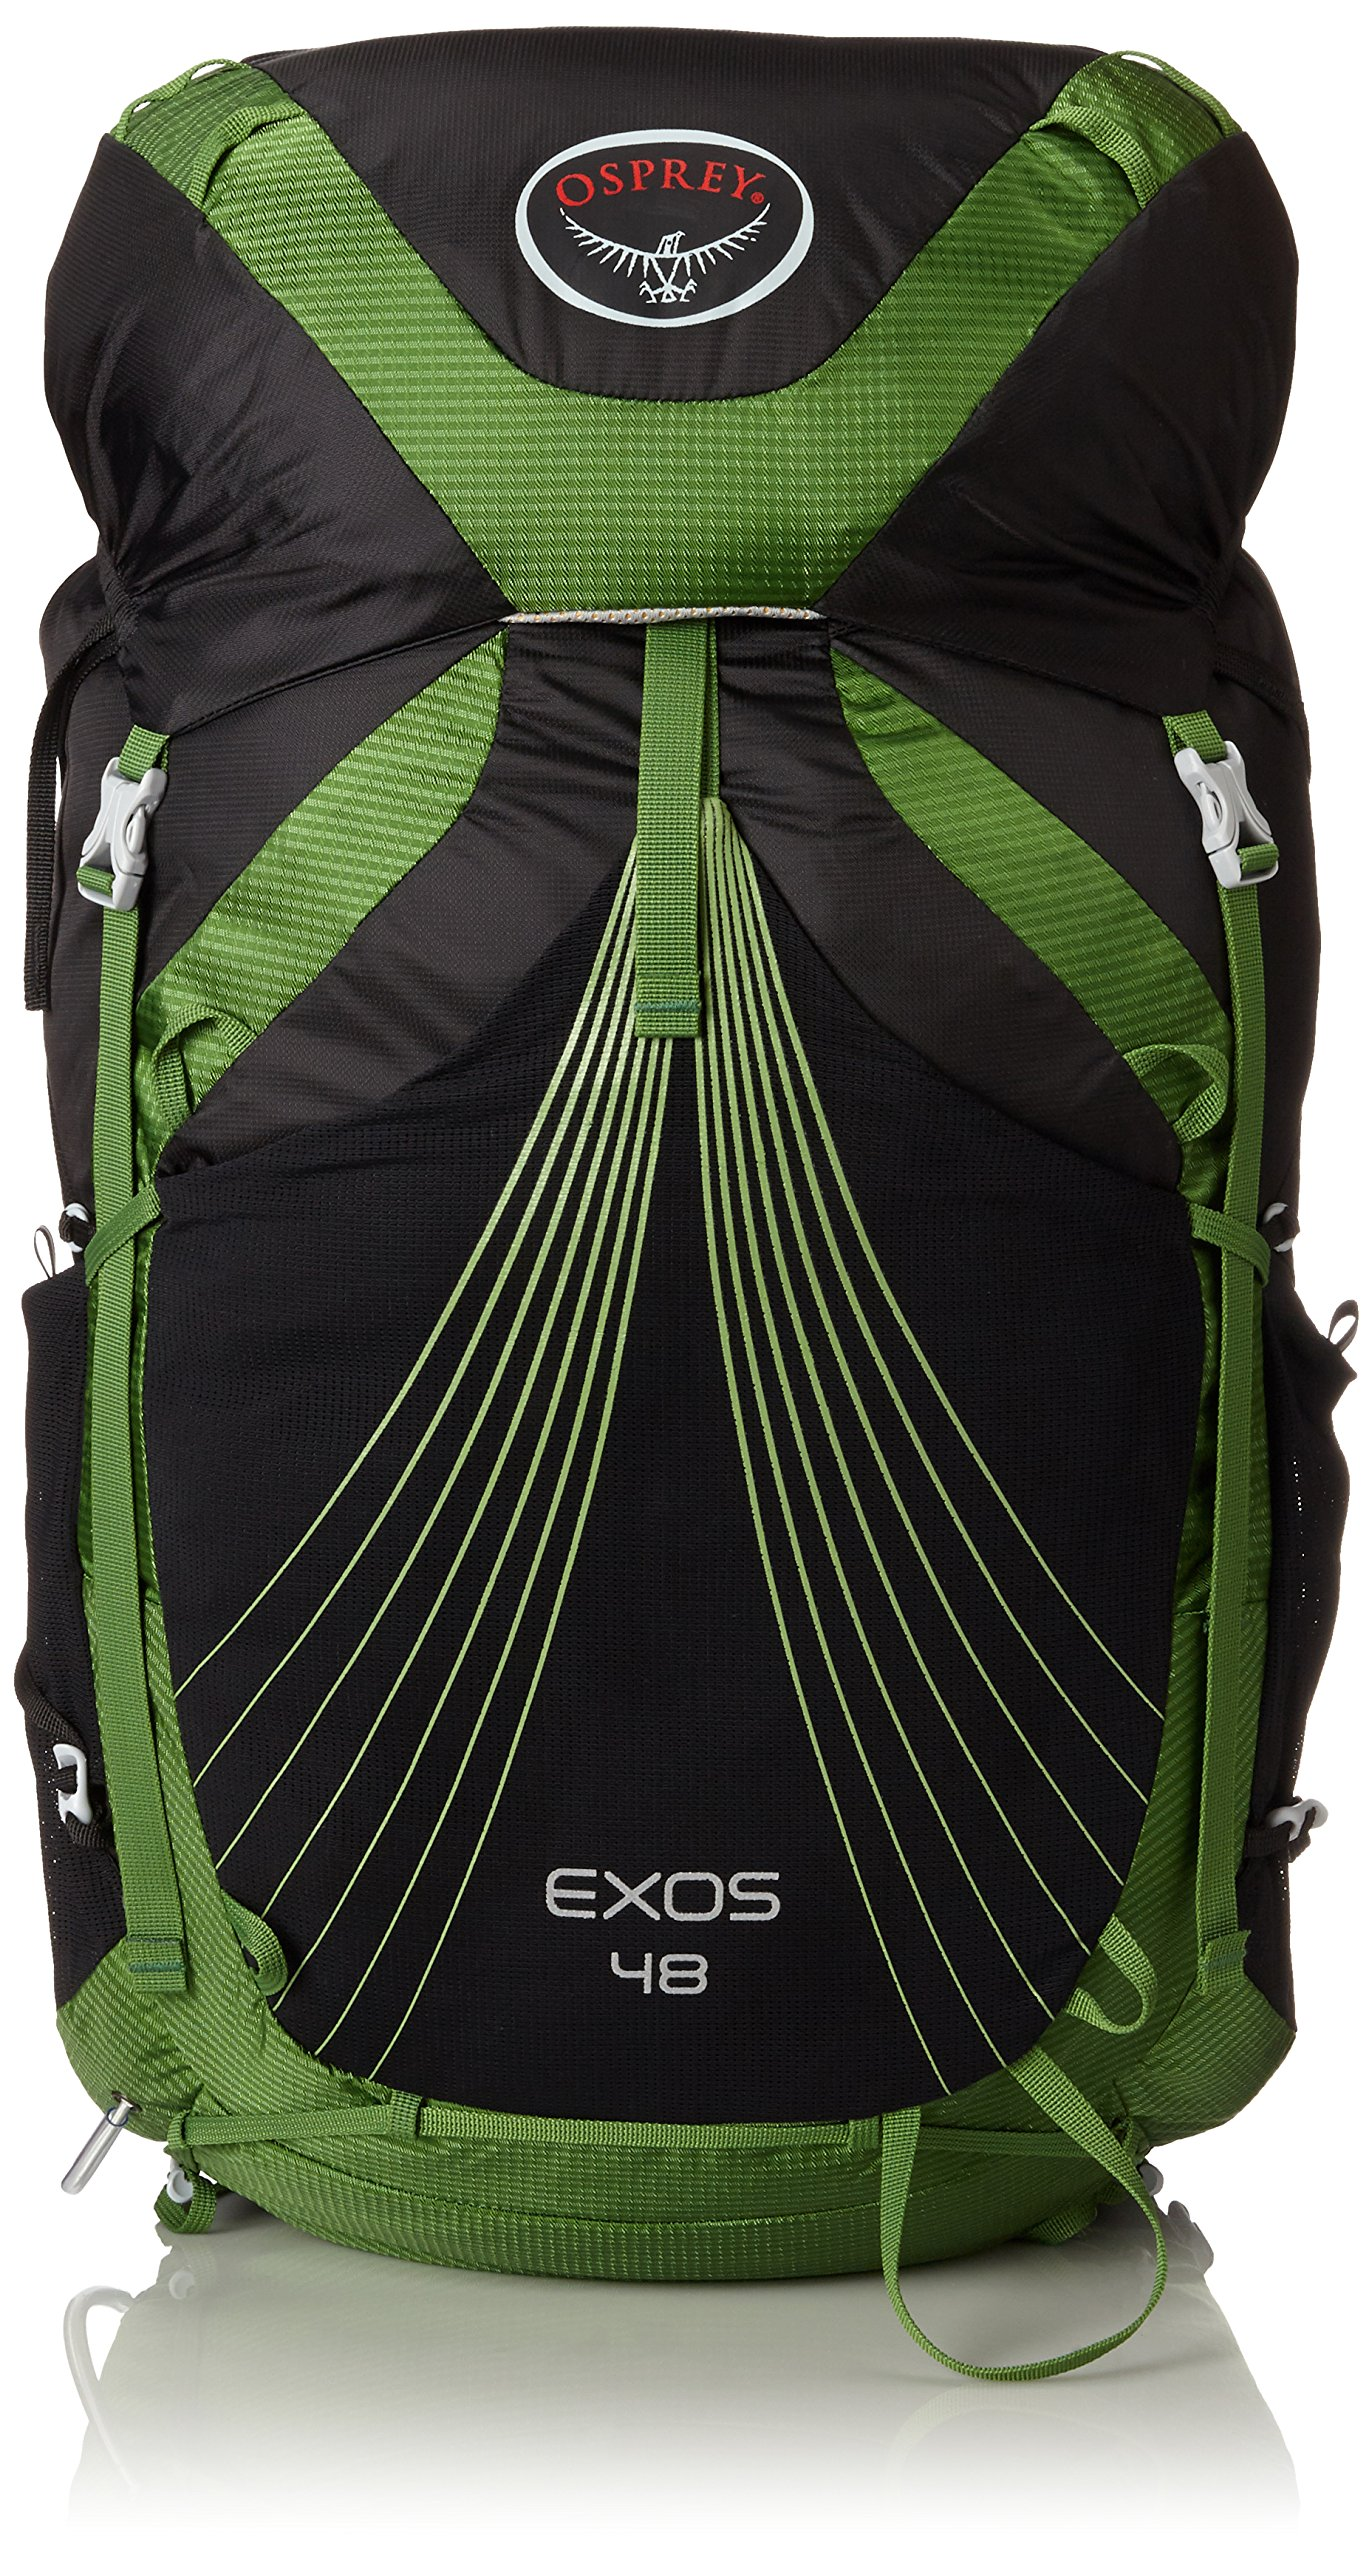 Osprey Packs Exos 48 Backpack (2017 Model), Basalt Black, Medium by Osprey